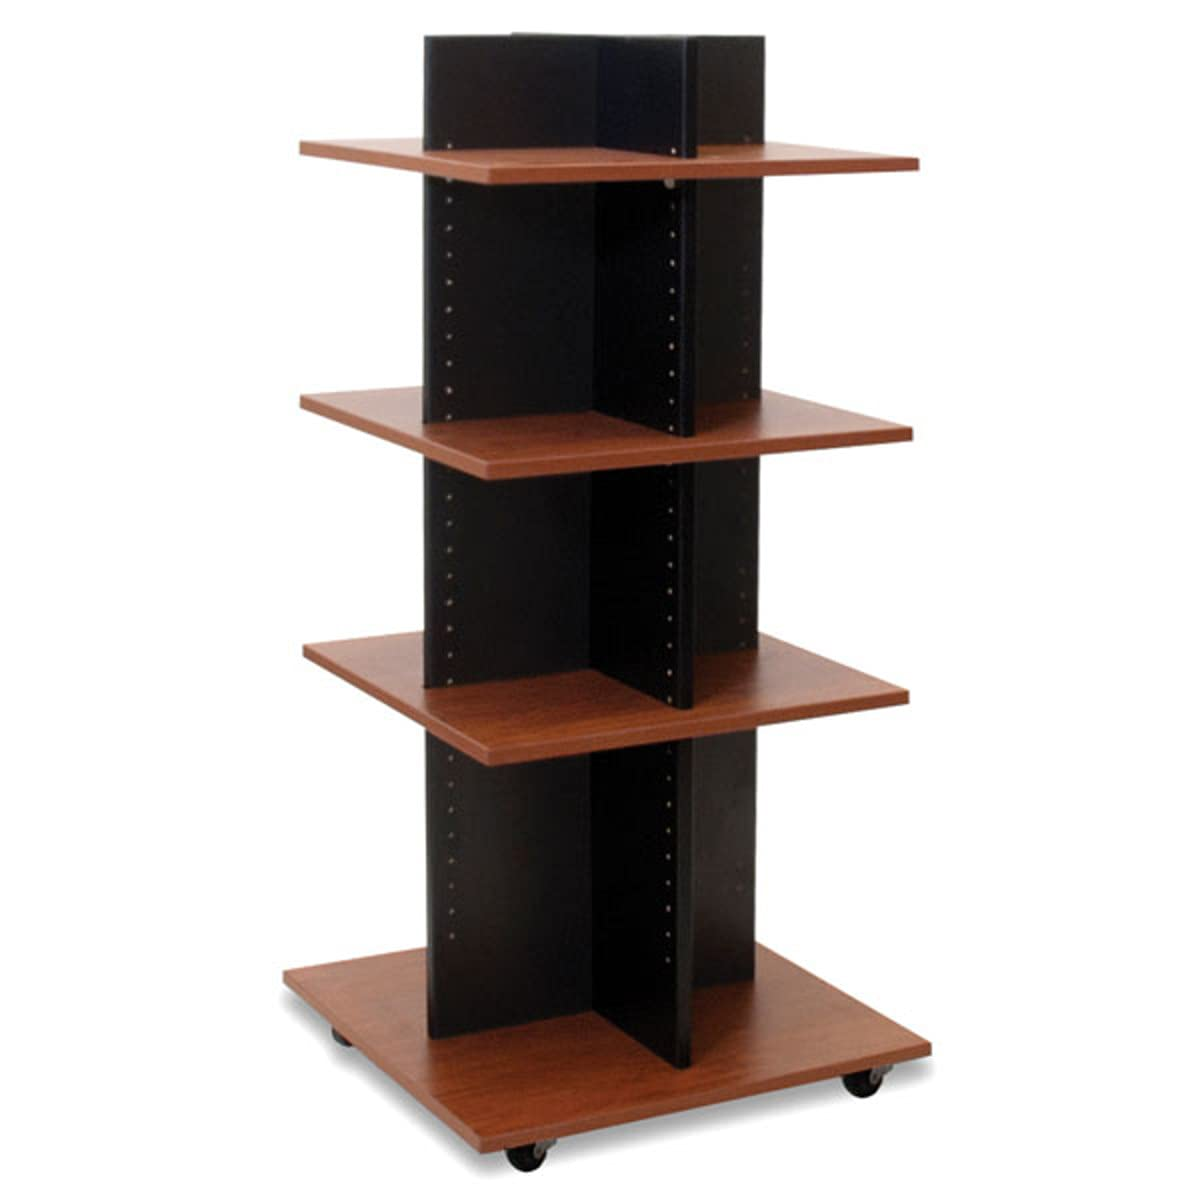 Black Shelf Tower Knock Factory outlet Outstanding Down with Cherry x W 5 Shelves D 24